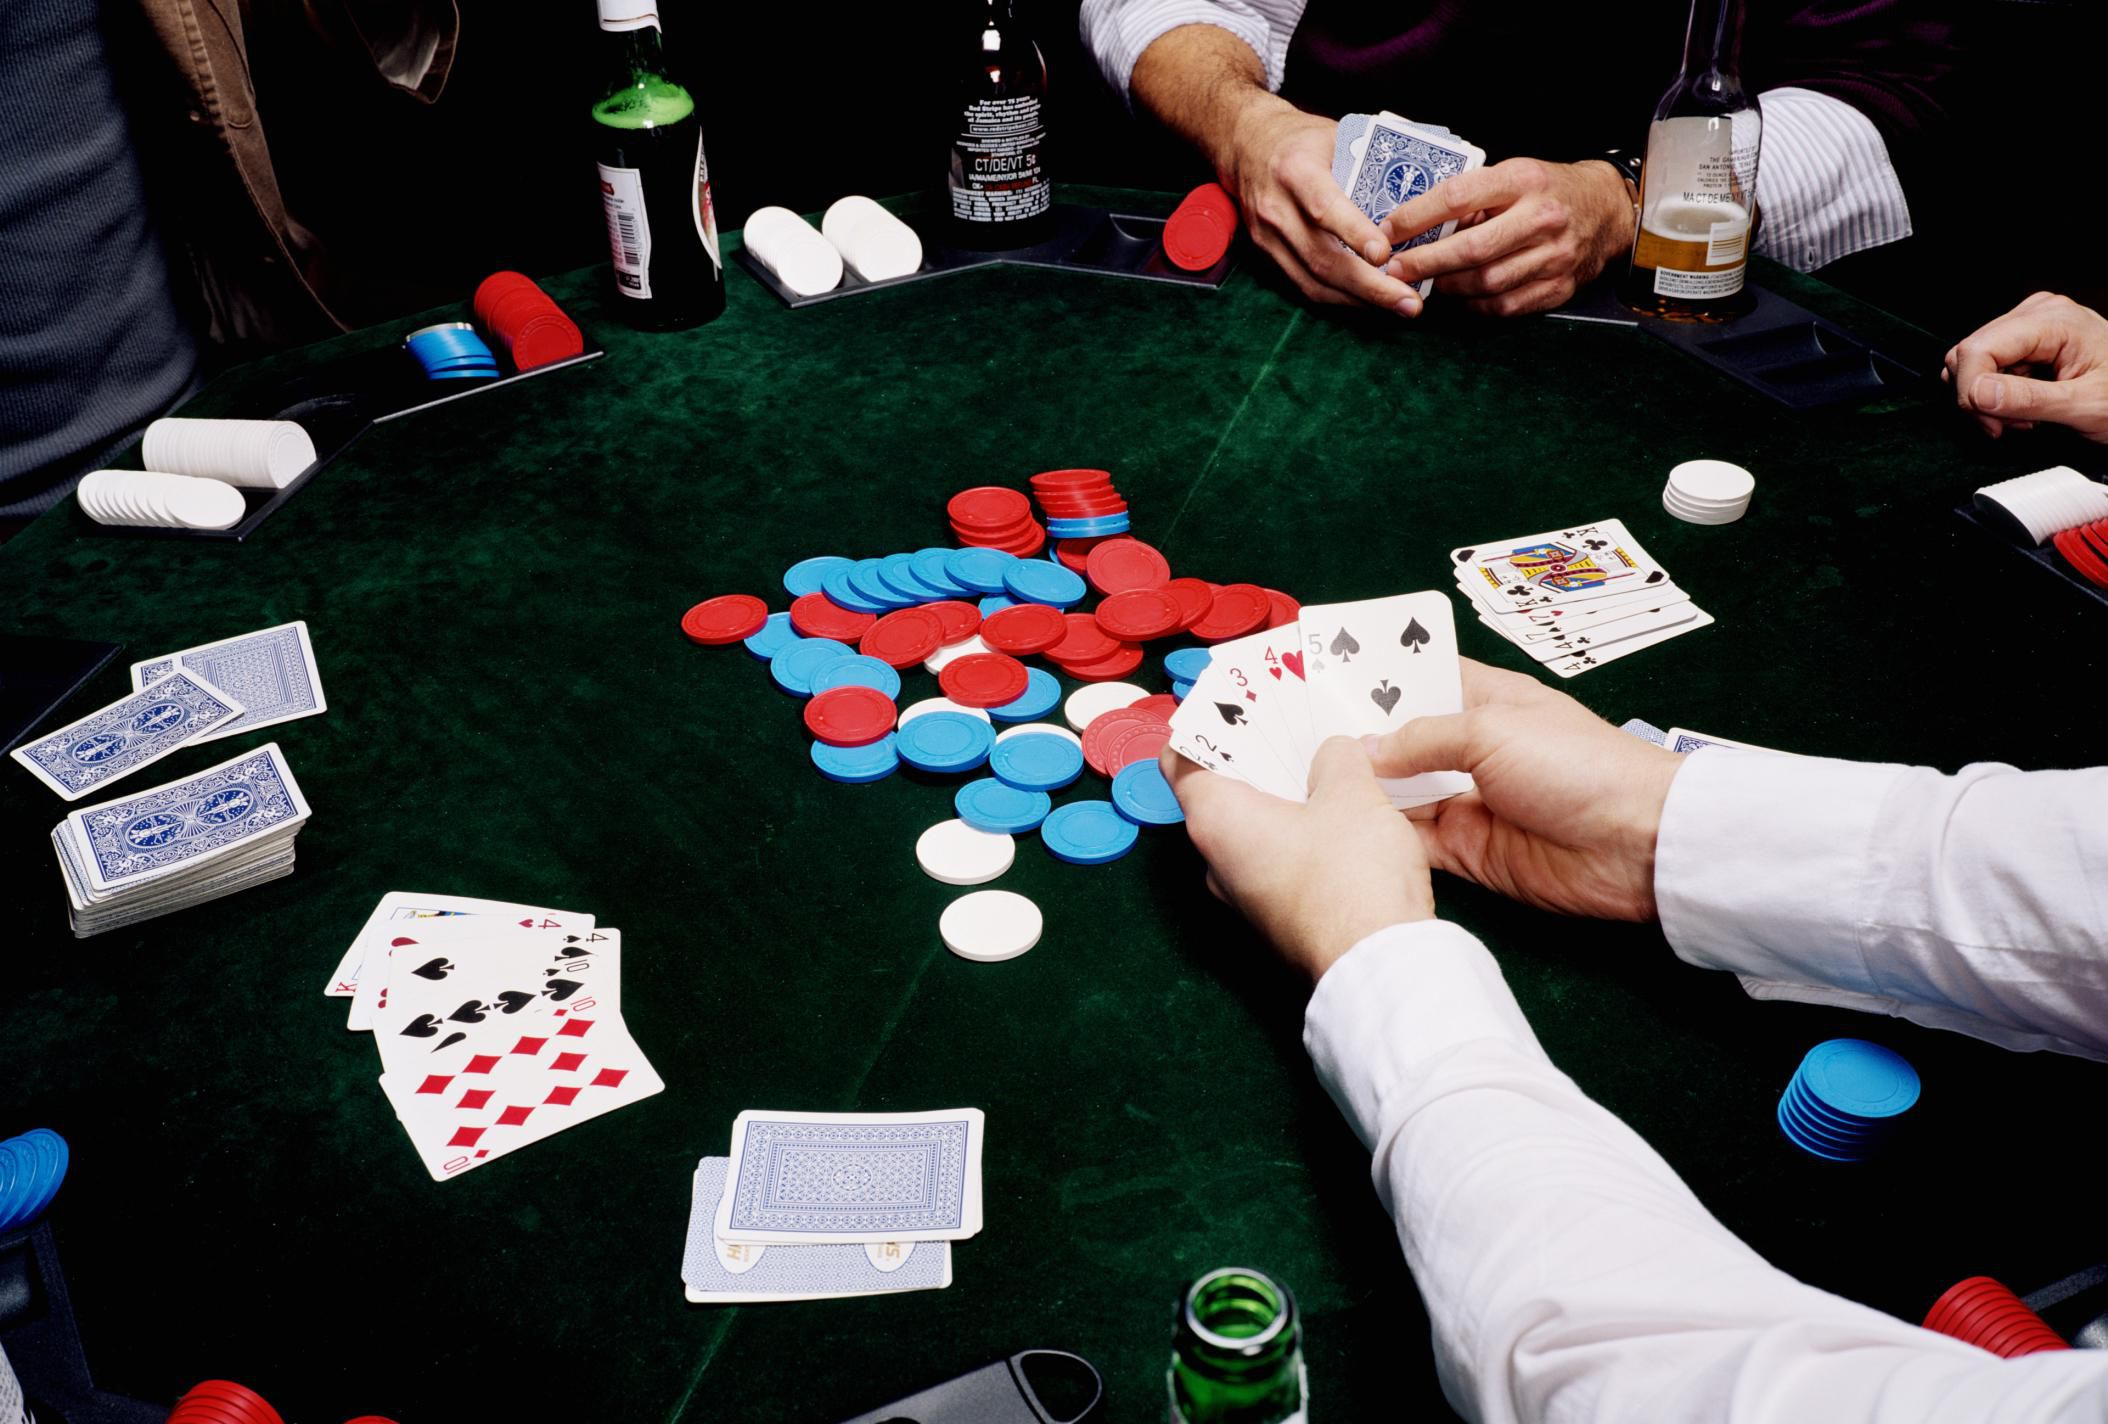 Beginners: What are the 3 amazing tips for playing poker in a casino?